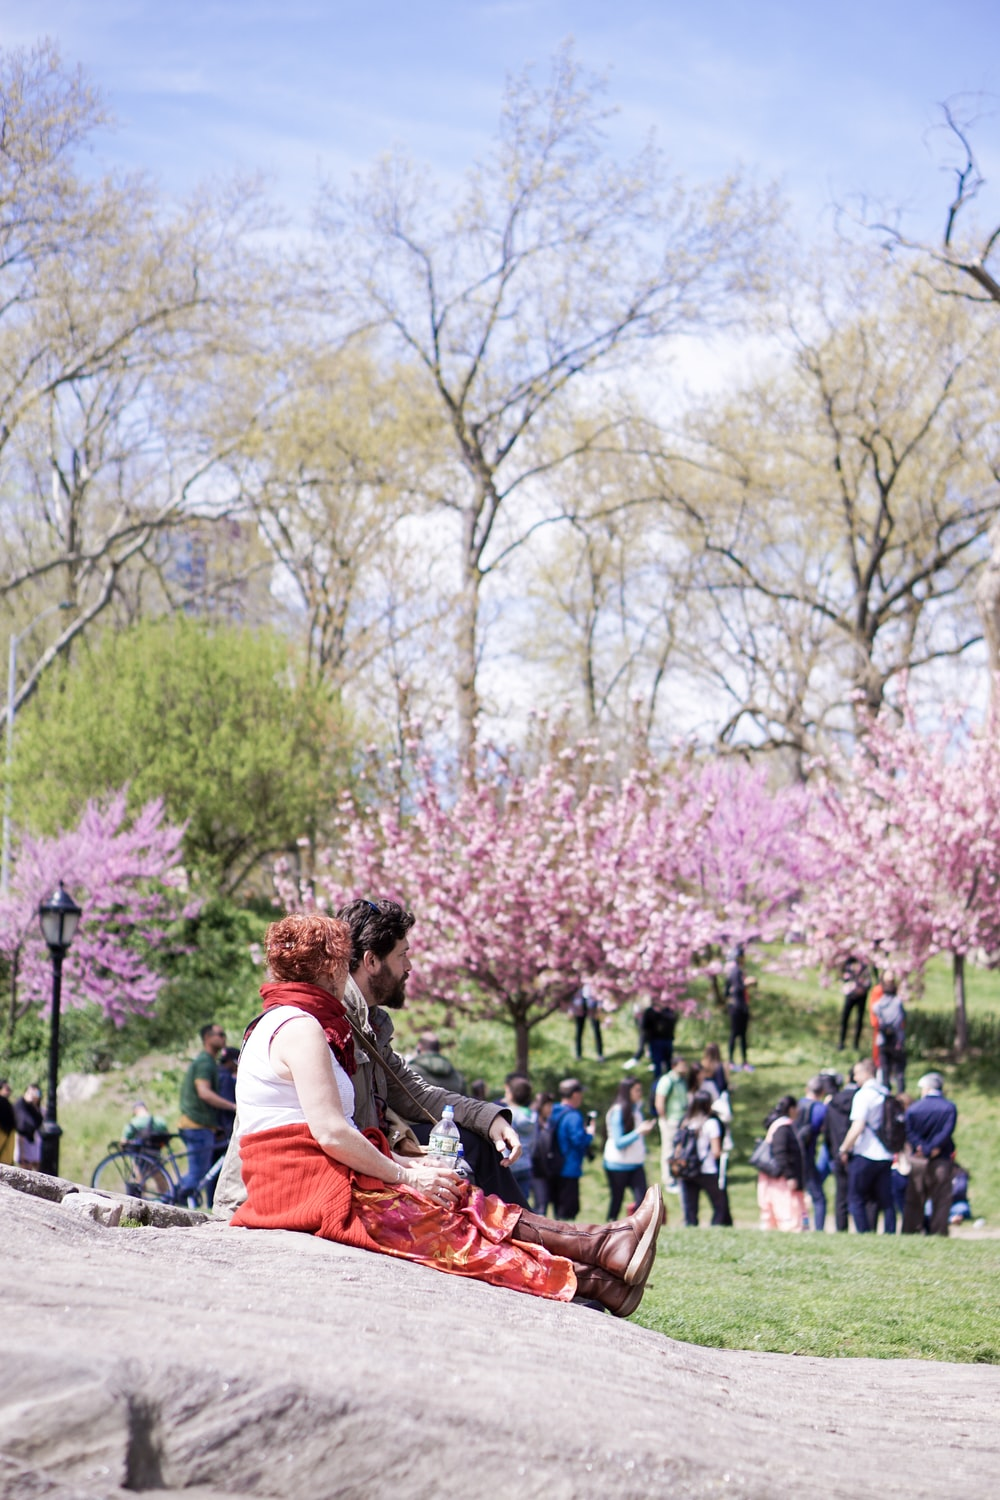 people standing and sitting near trees during daytime